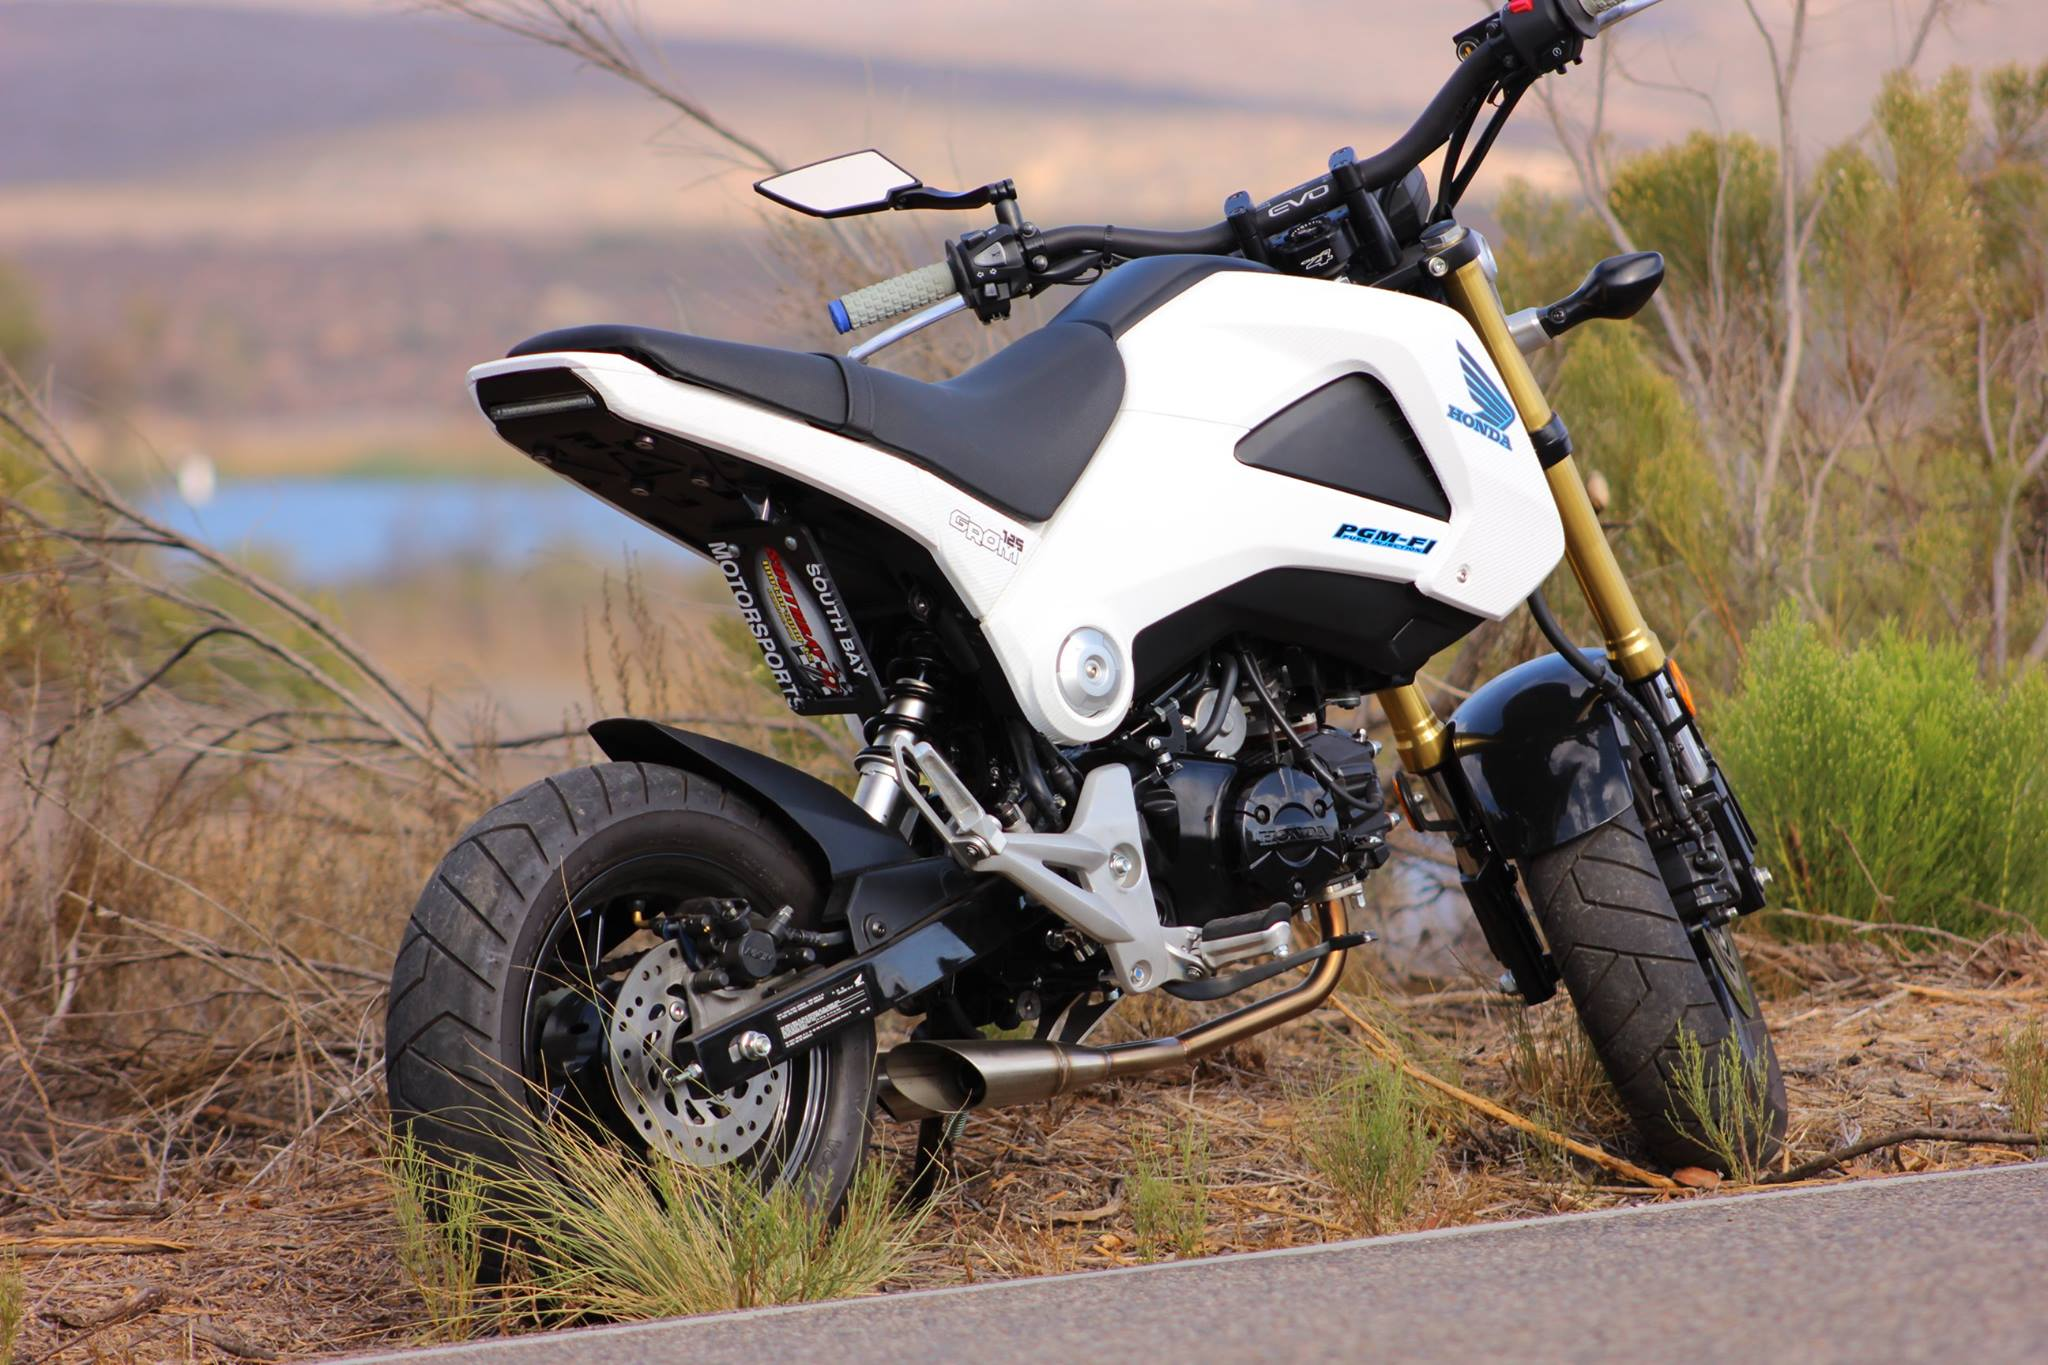 Super Clean Modded Grom for Sale San Diego